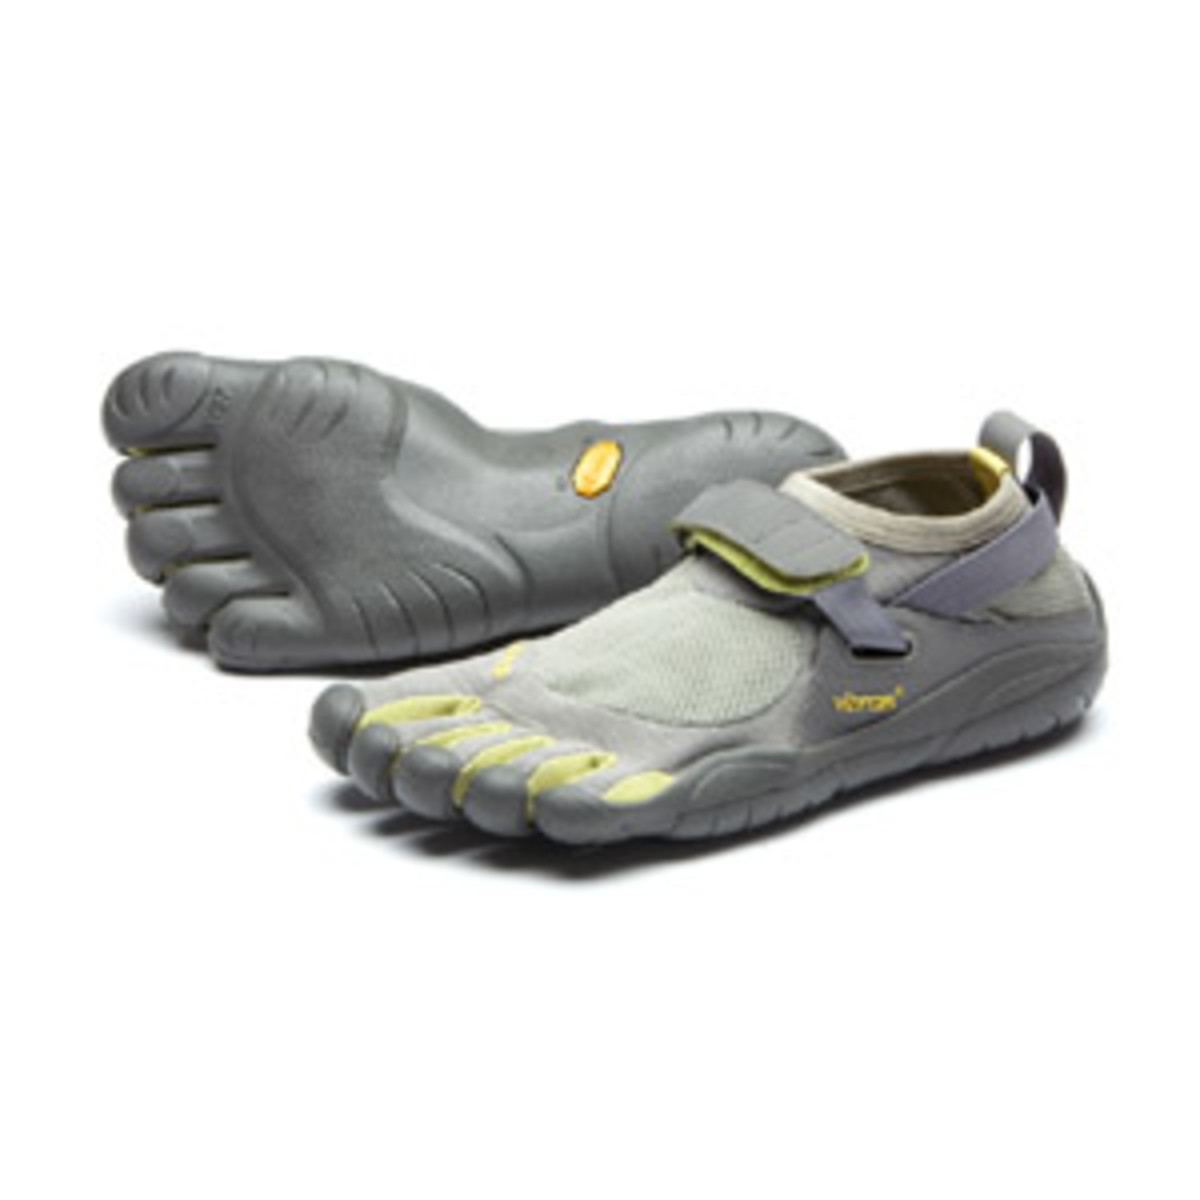 Types of Water Shoes | hubpages